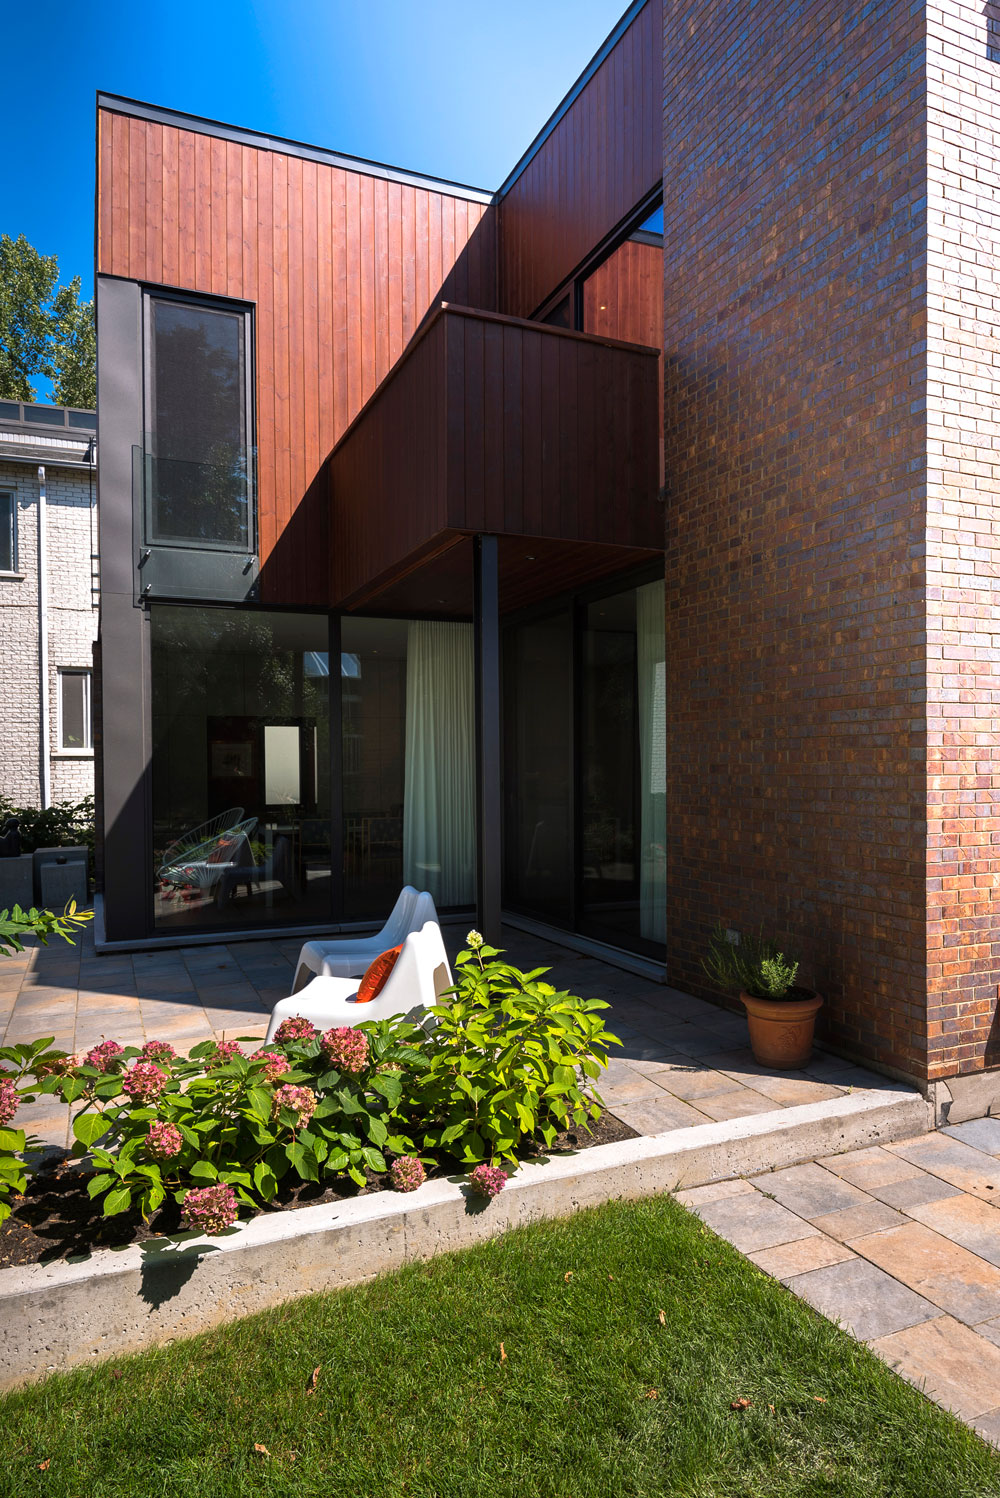 Home in Montreal by Anik Peloquin Architecte (5)